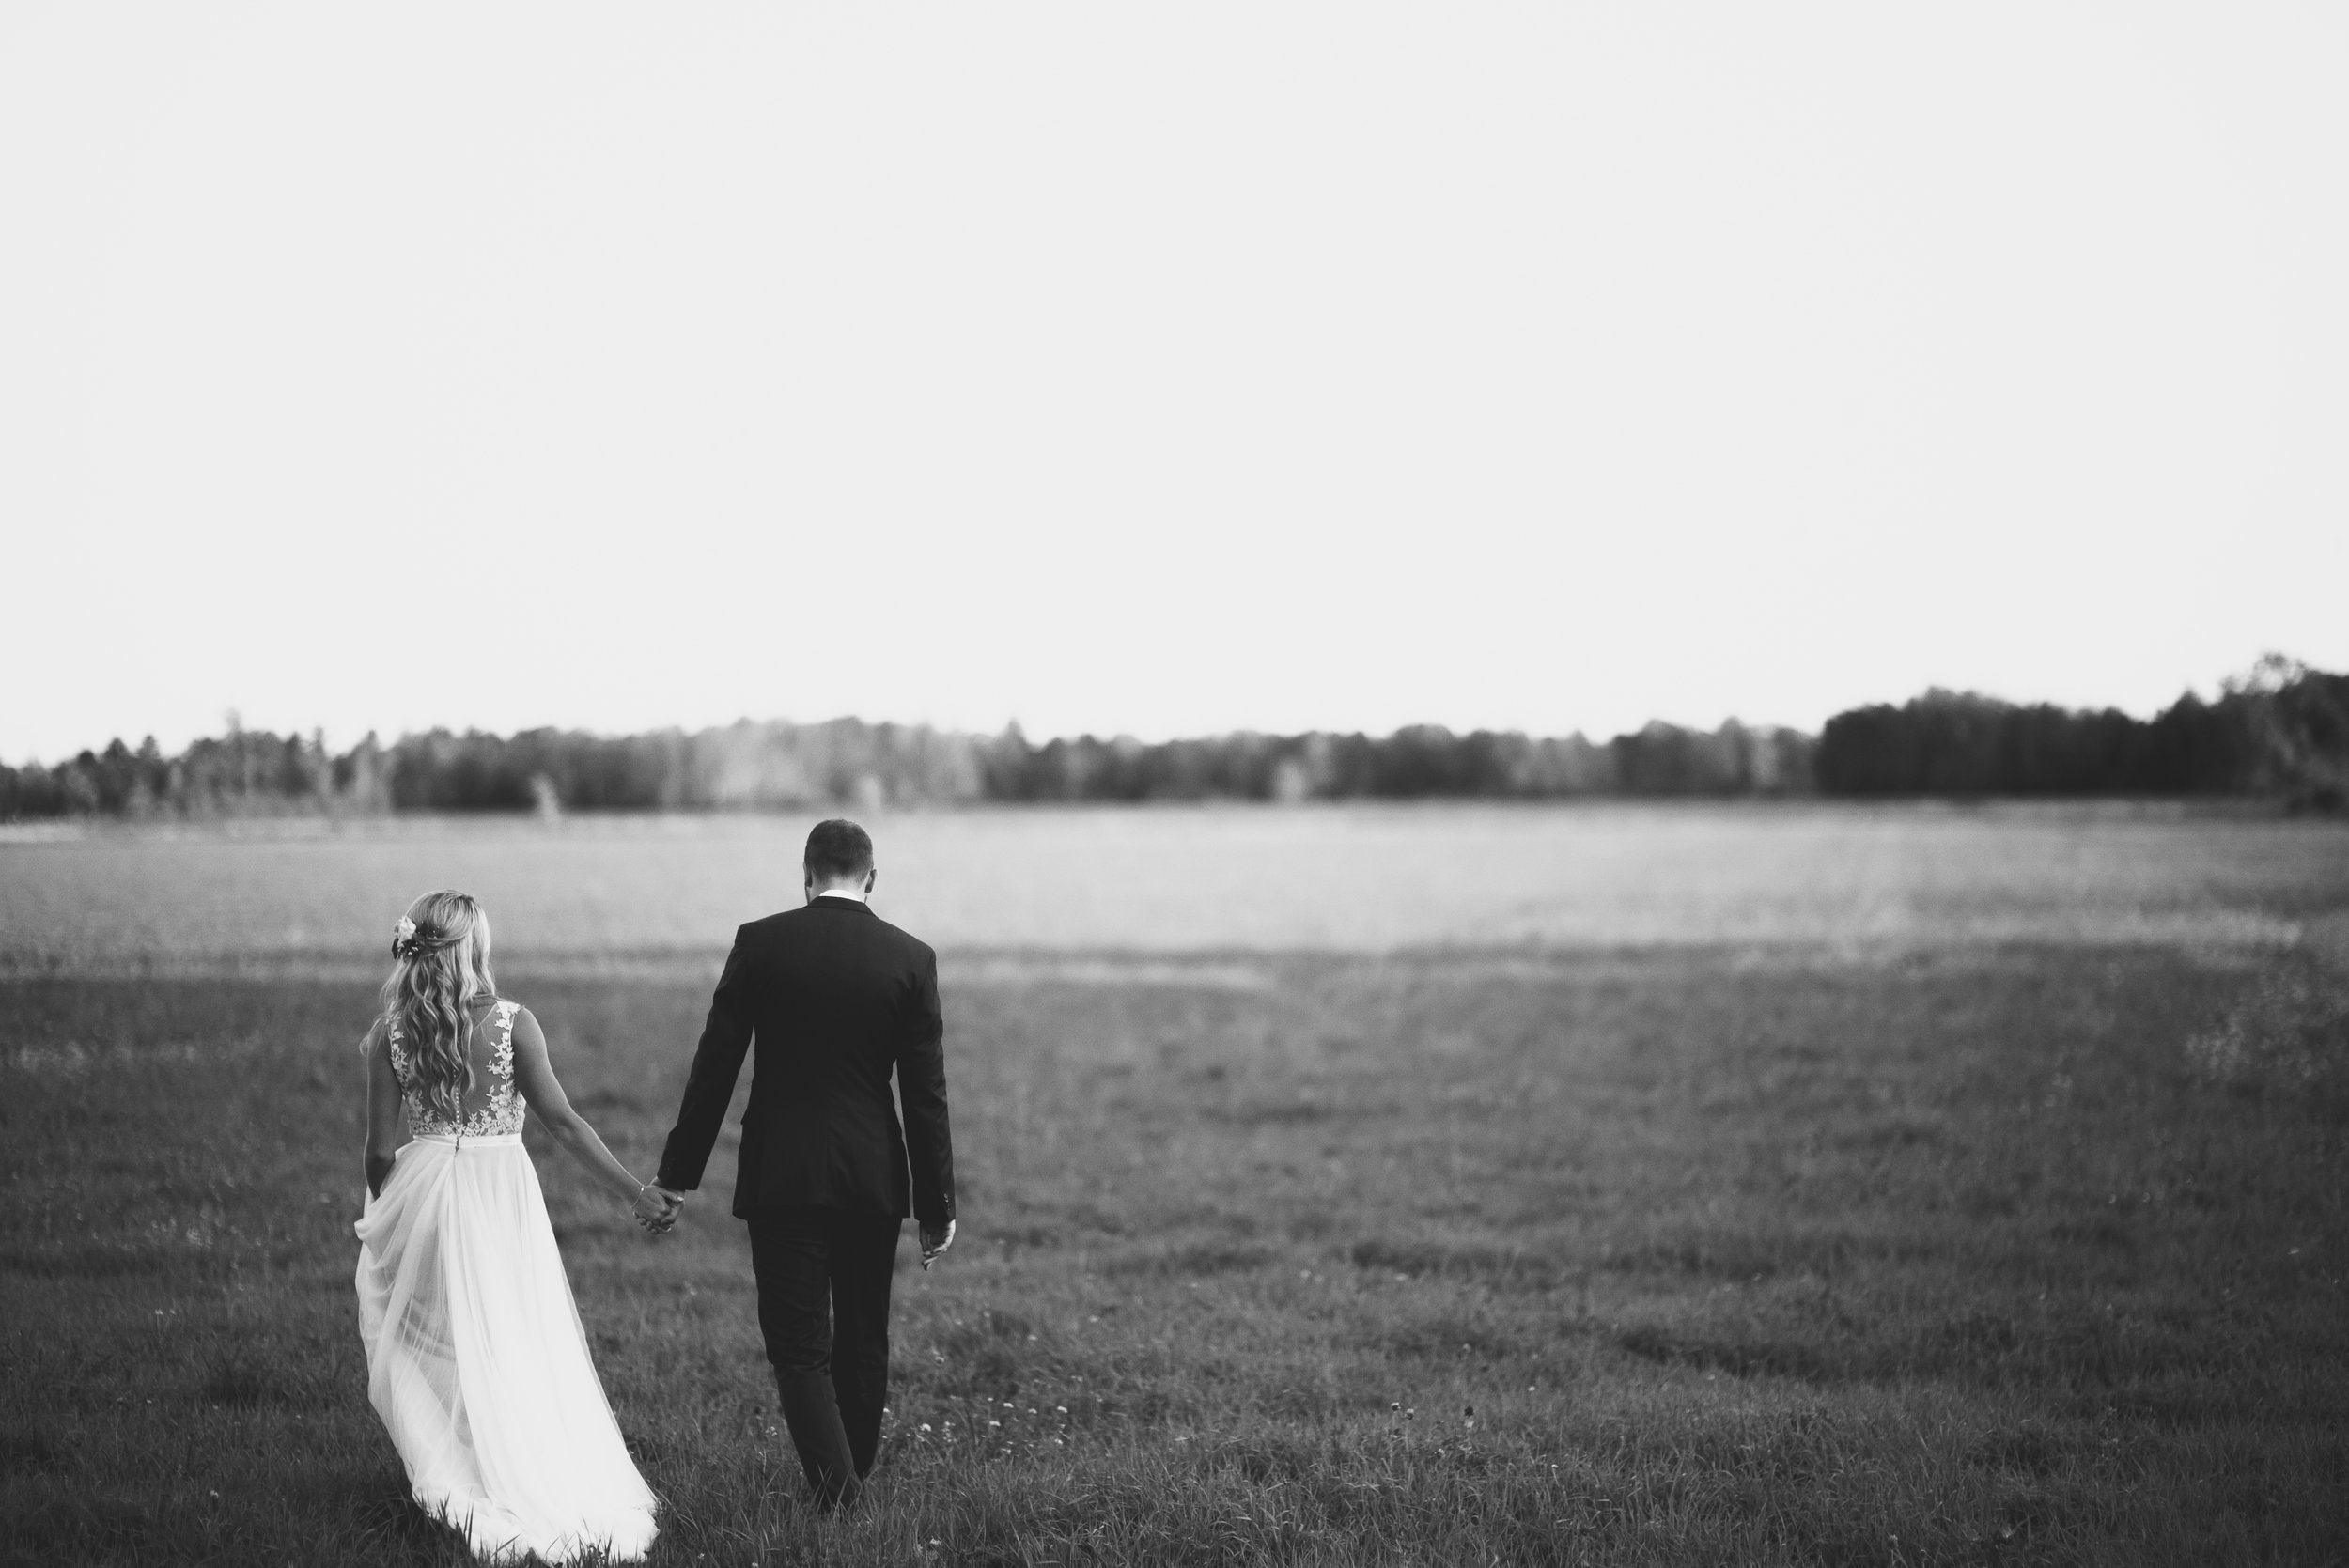 Saskia + Jon - Photos by Jessica Lee Photography